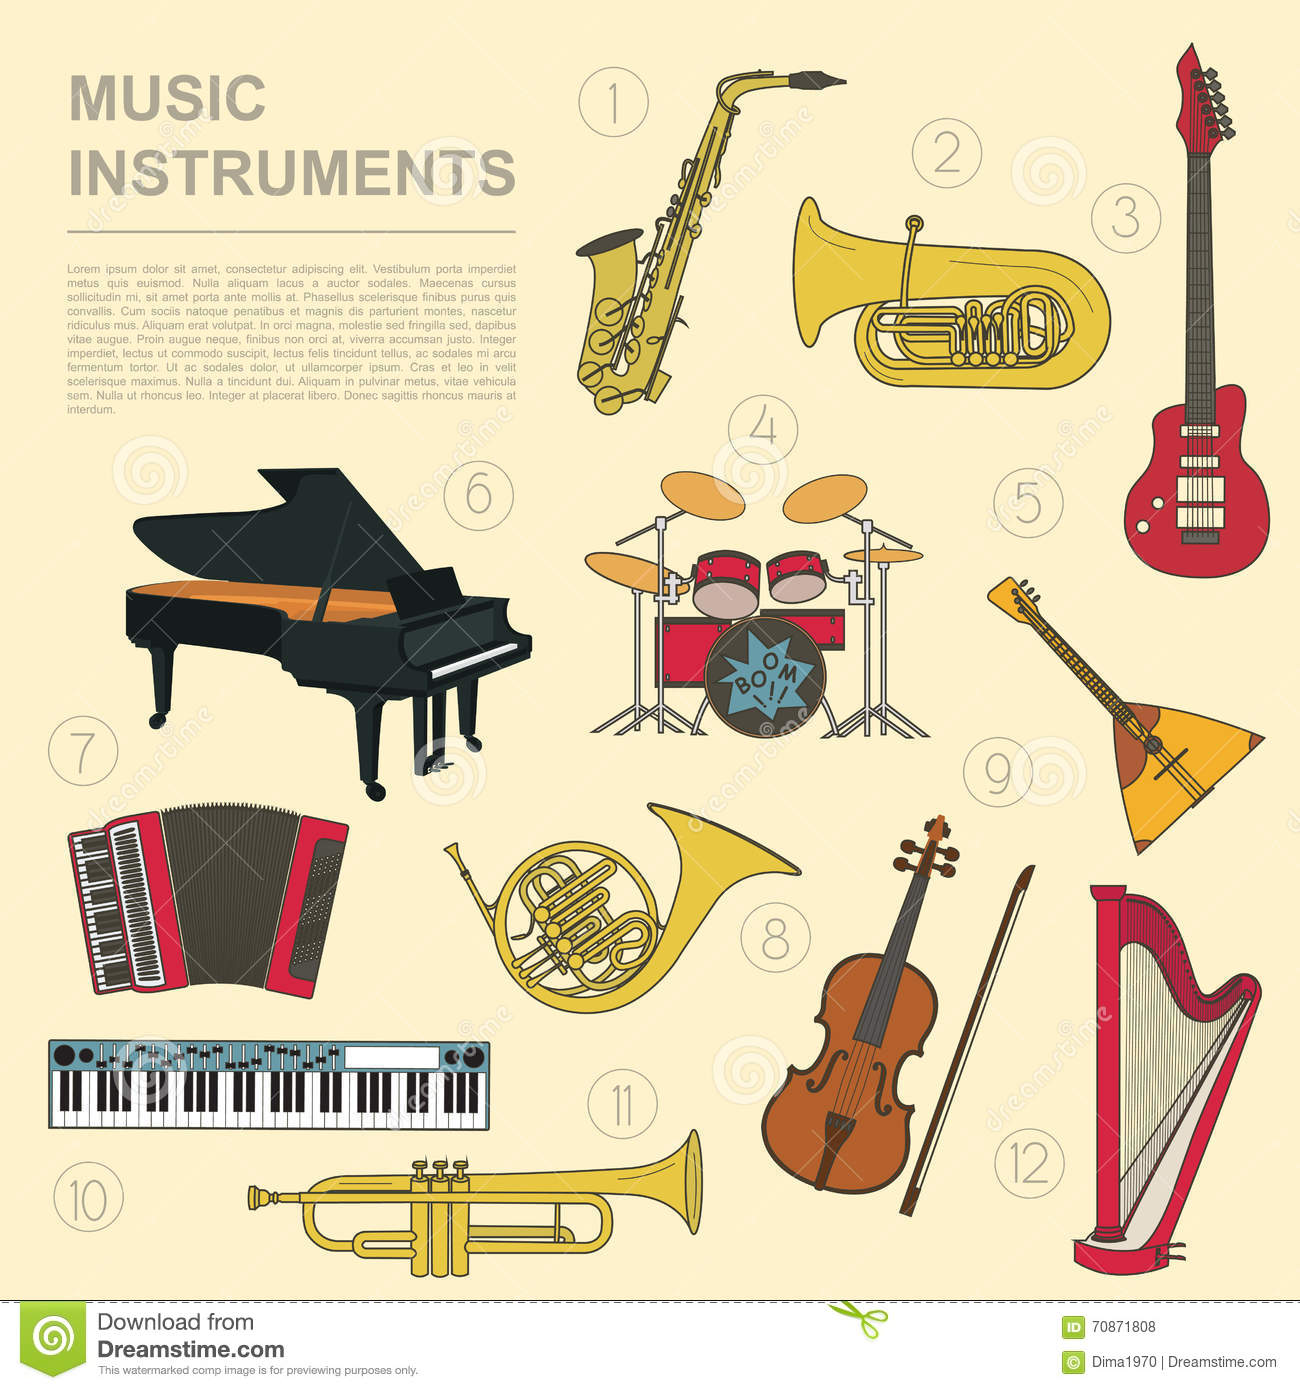 essay on types of musical instruments Free instruments papers, essays, and research papers it has been used for almost all types of music the guitar has made many cultural impacts on society.